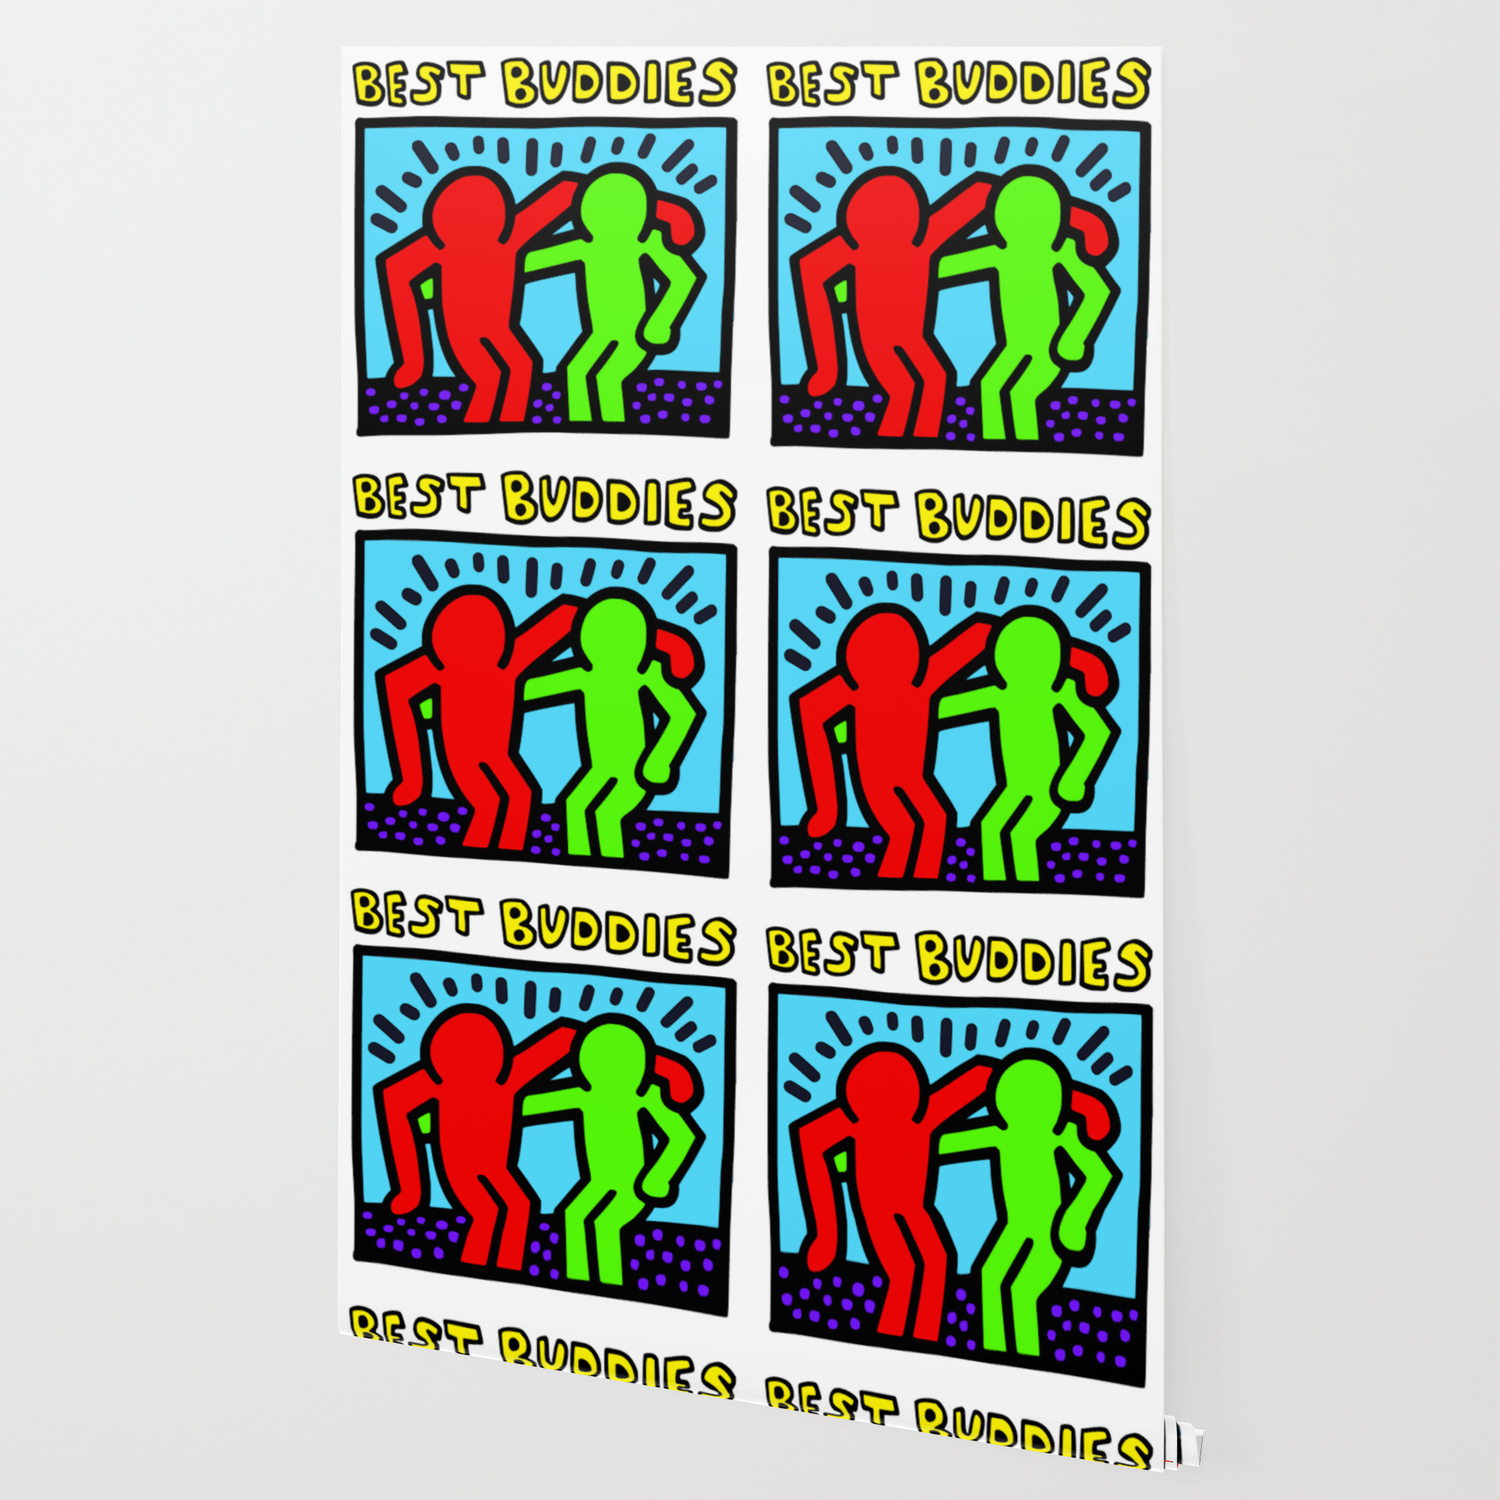 Keith Haring Inspired Best Buddies Complementary Color R G Edition Wallpaper